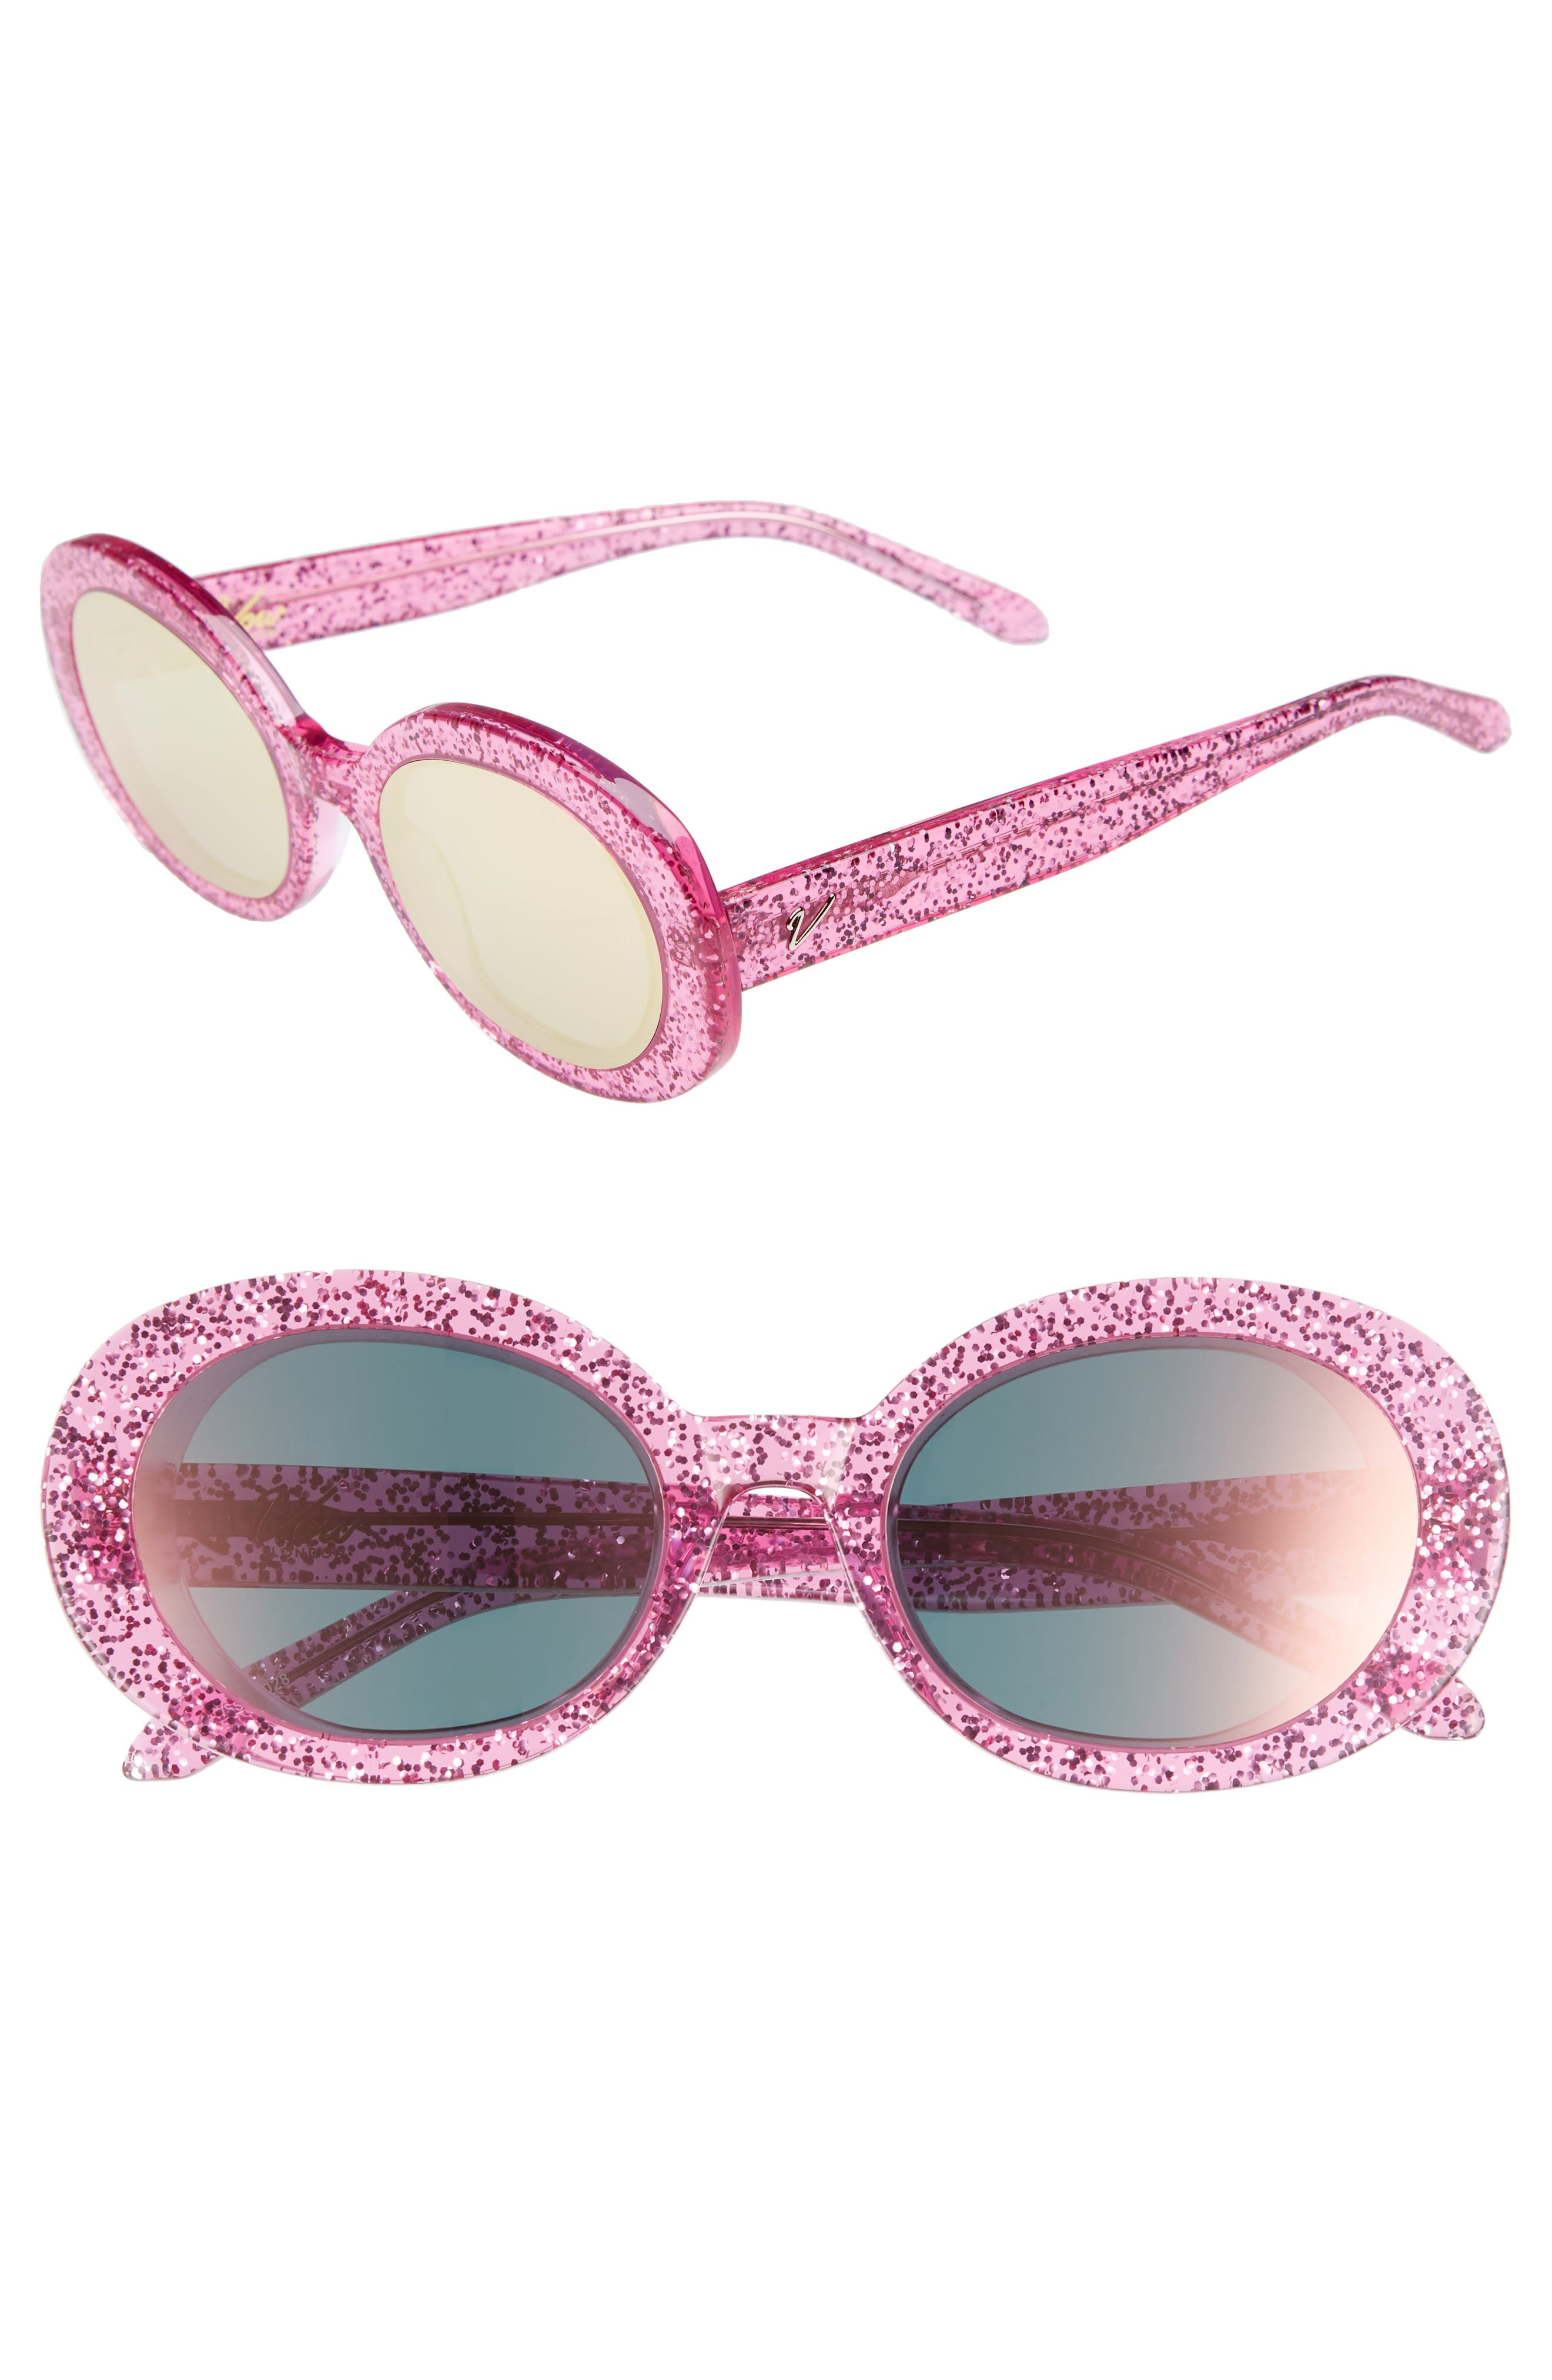 Selena 53mm Oval Sunglasses,                         Main,                         color, Pink Glitter/ Pink Mirror